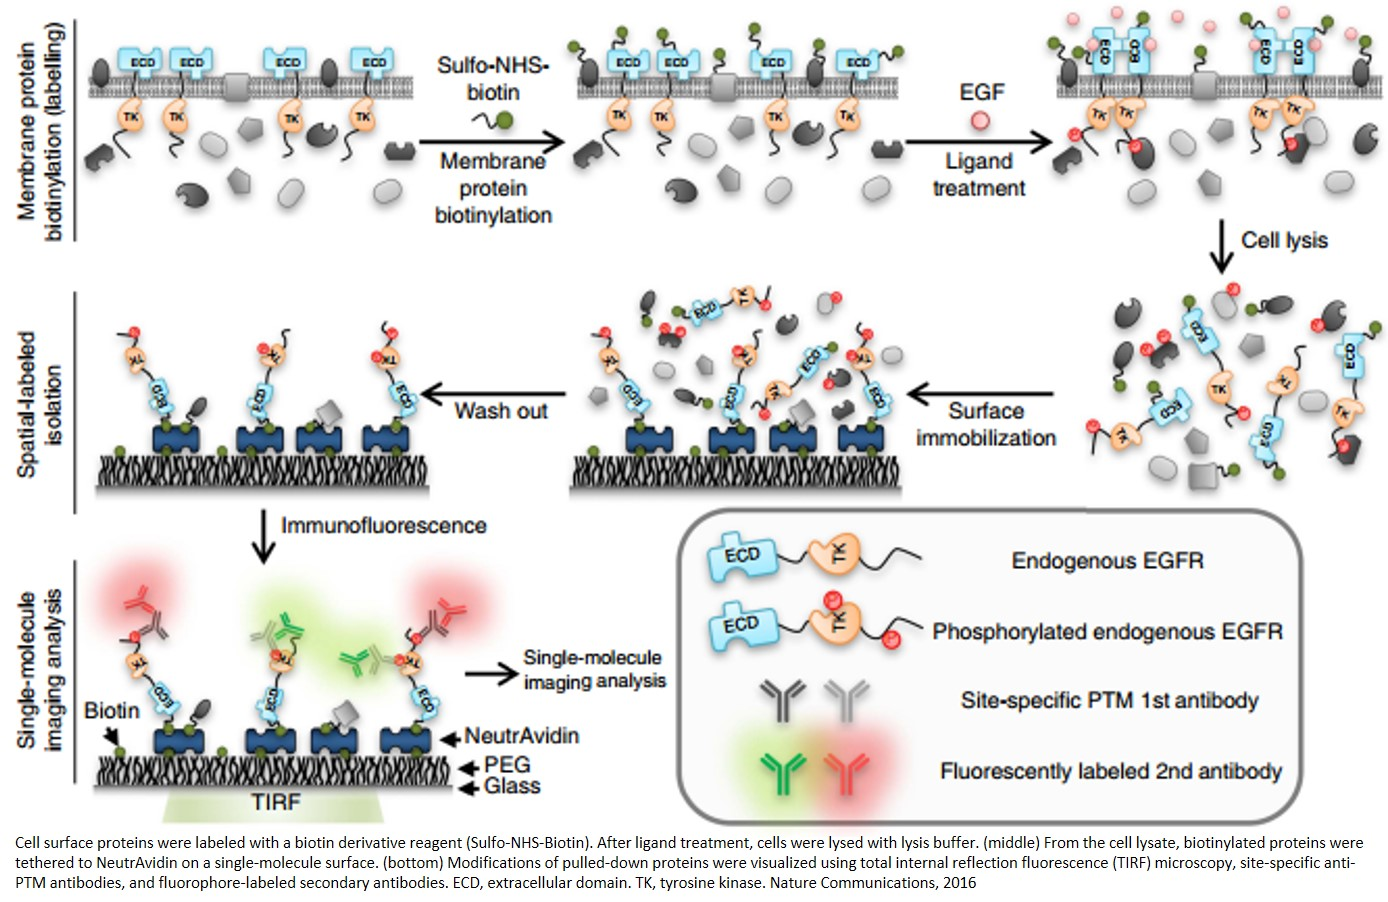 Single-molecule blotting to detect site-specific receptor phosphorylations